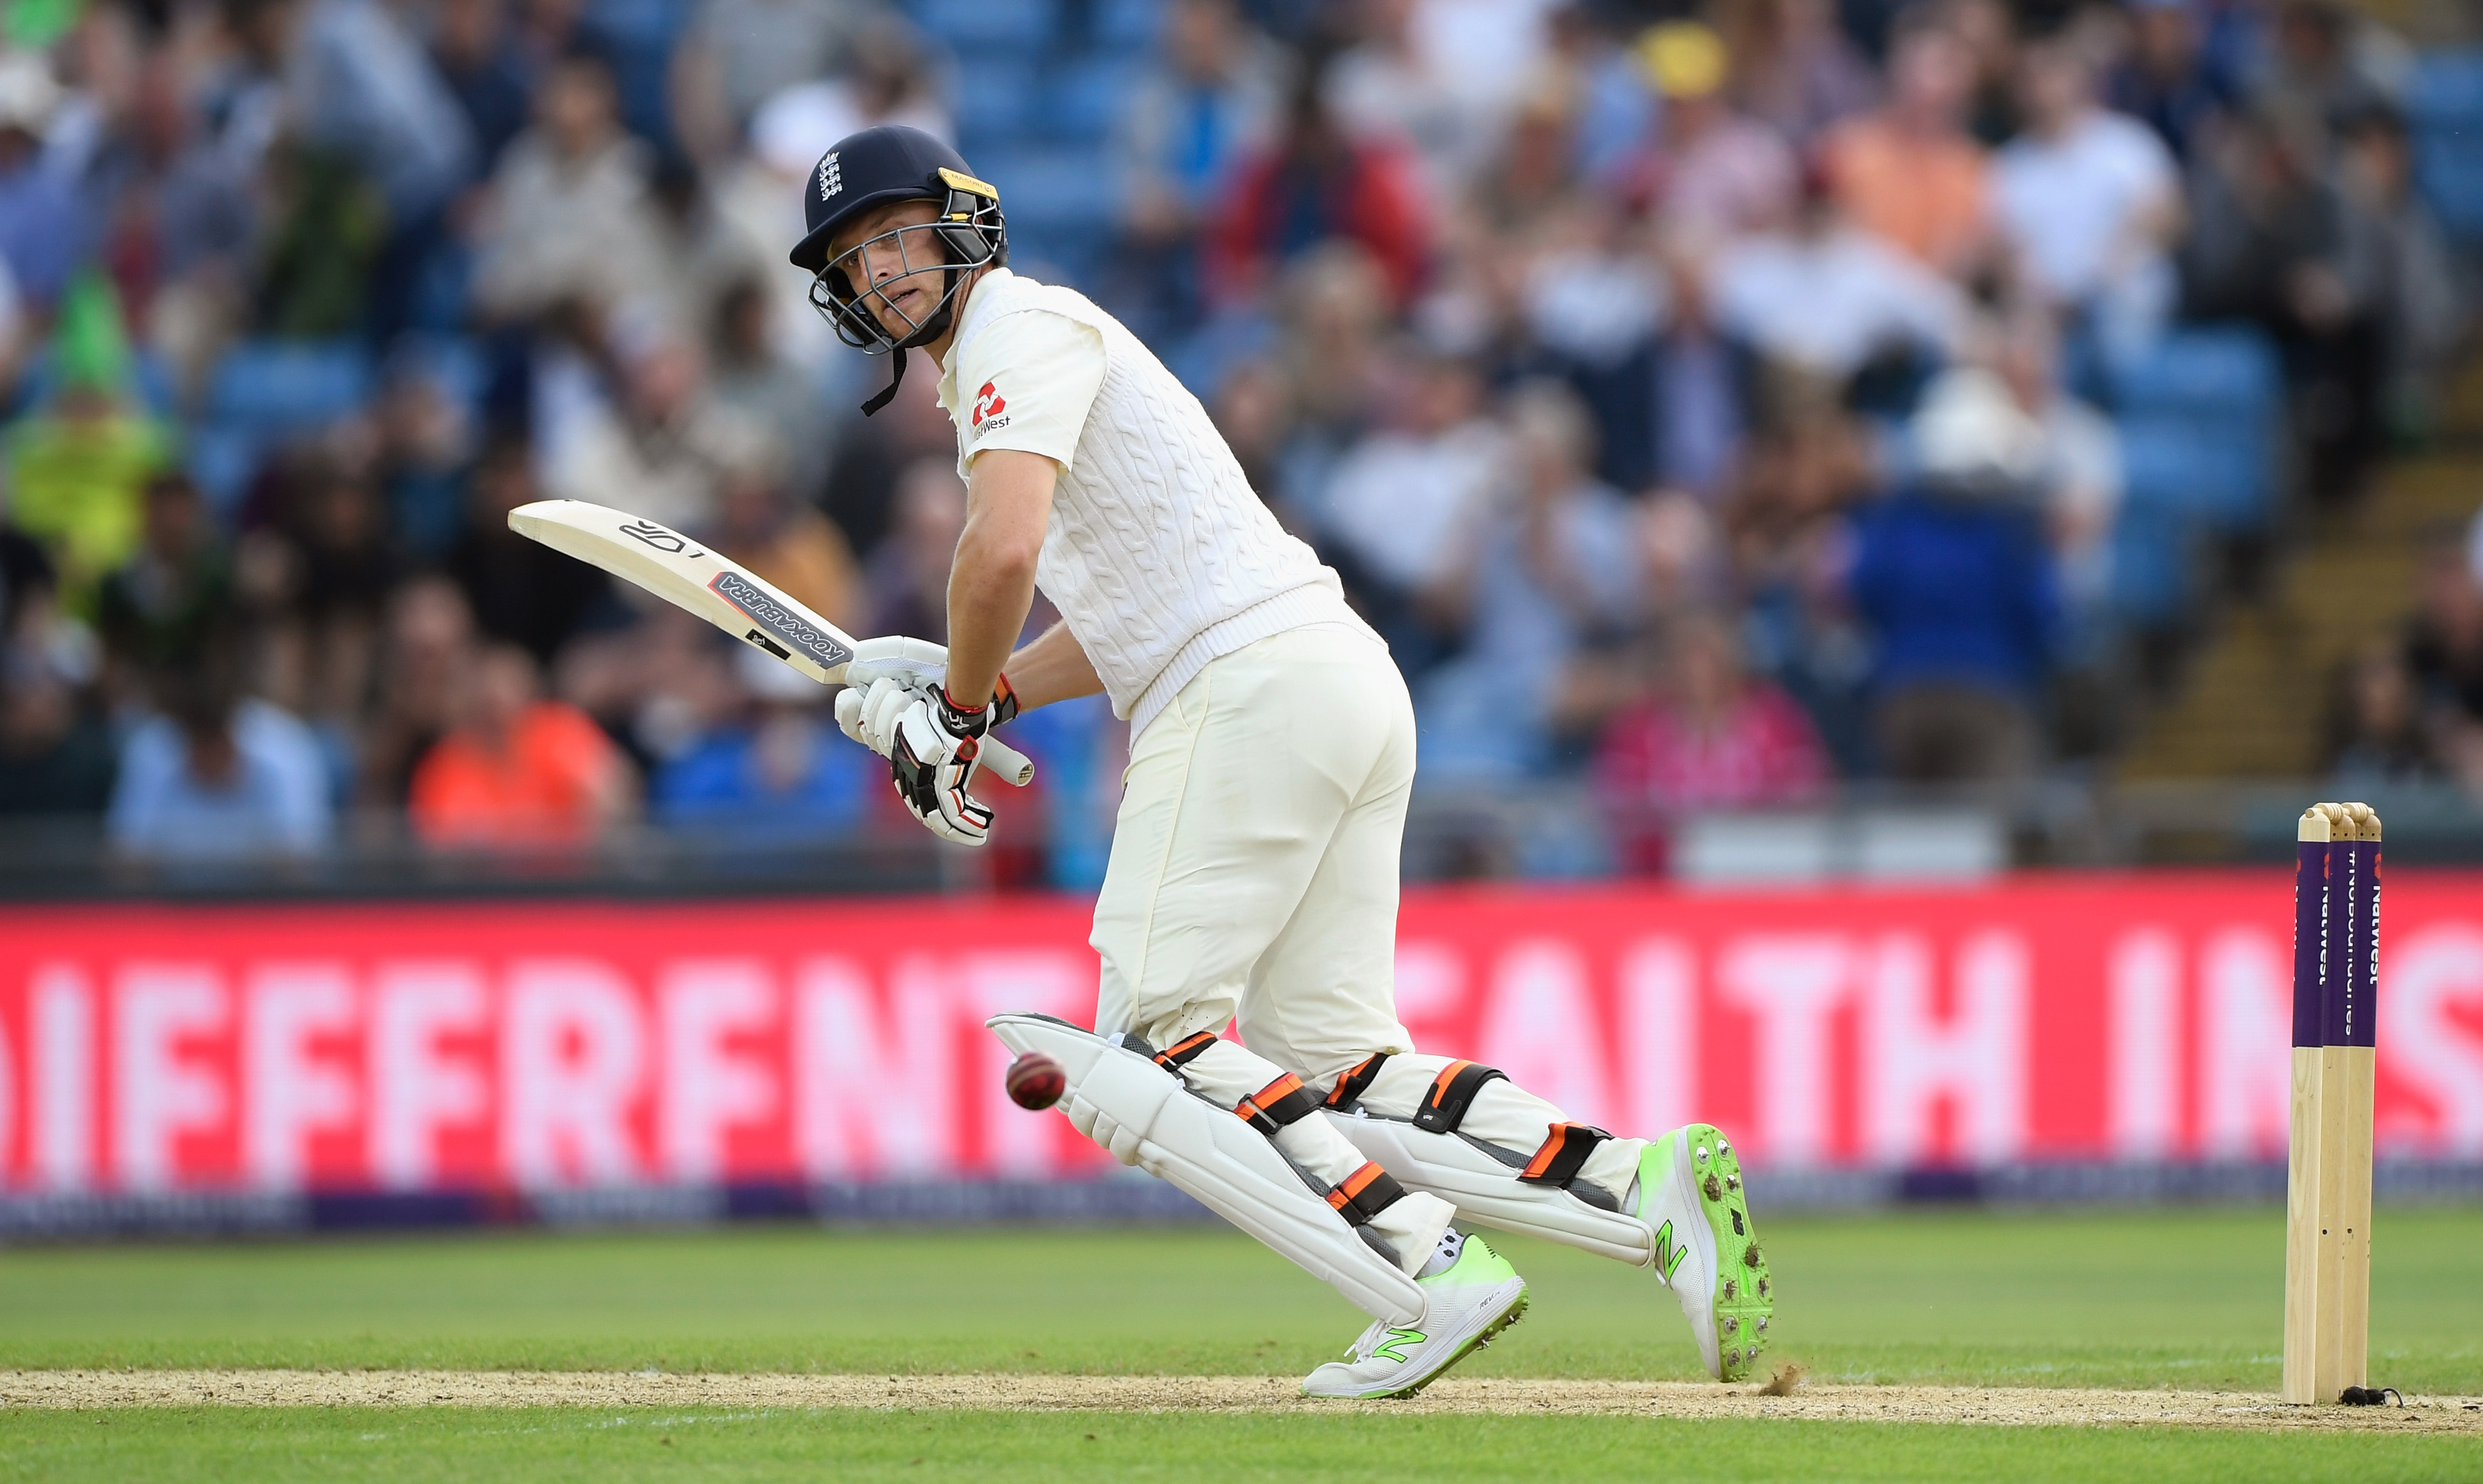 Jos Buttler made his return to England's Test side earlier in the home summer against Pakistan. (Getty)